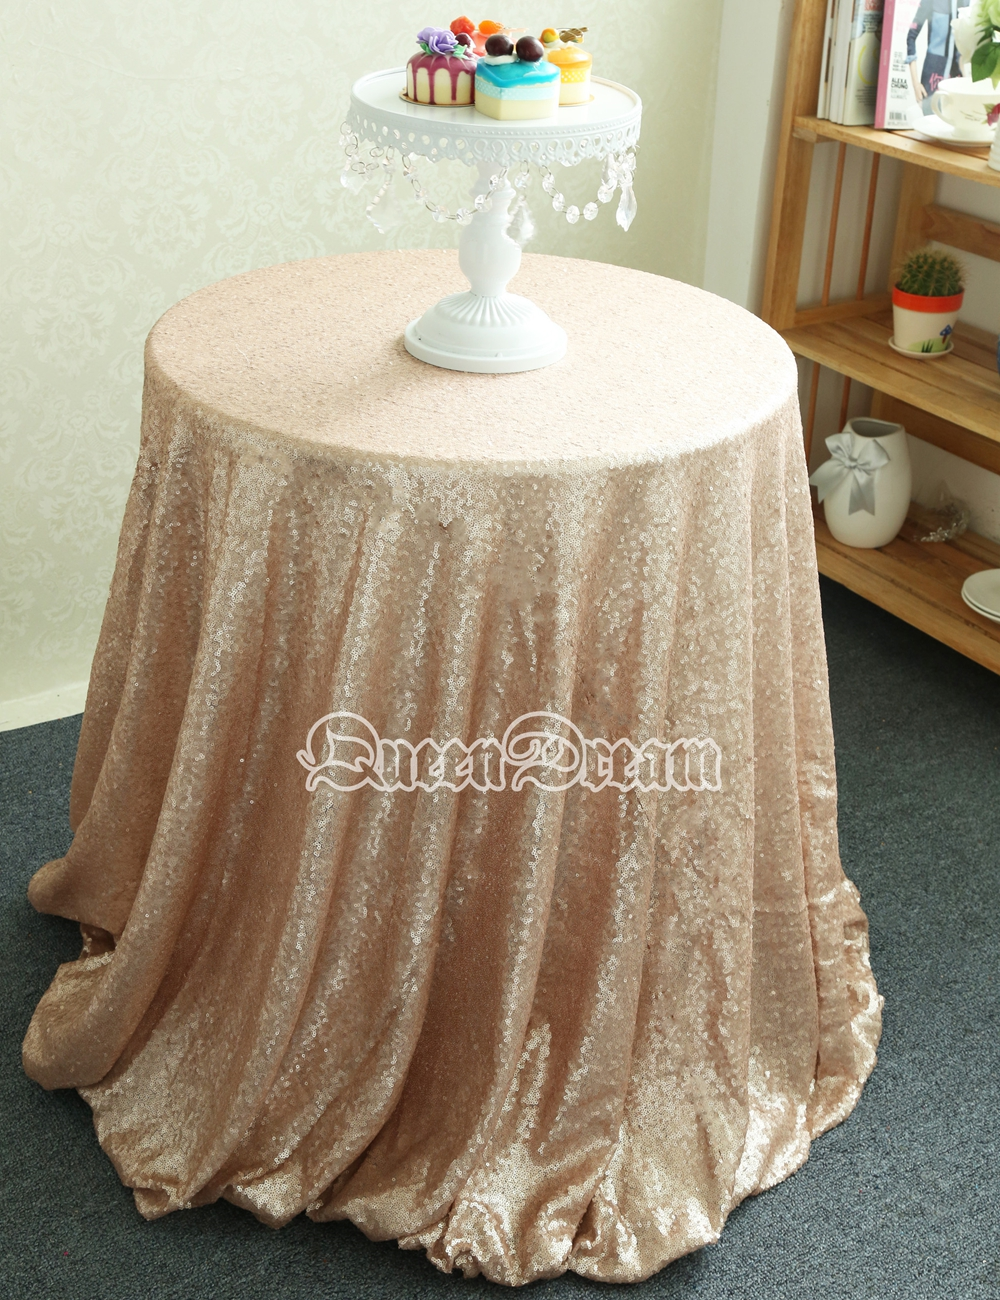 super popular 90 inches round champagne sequin tablecloth for decoration